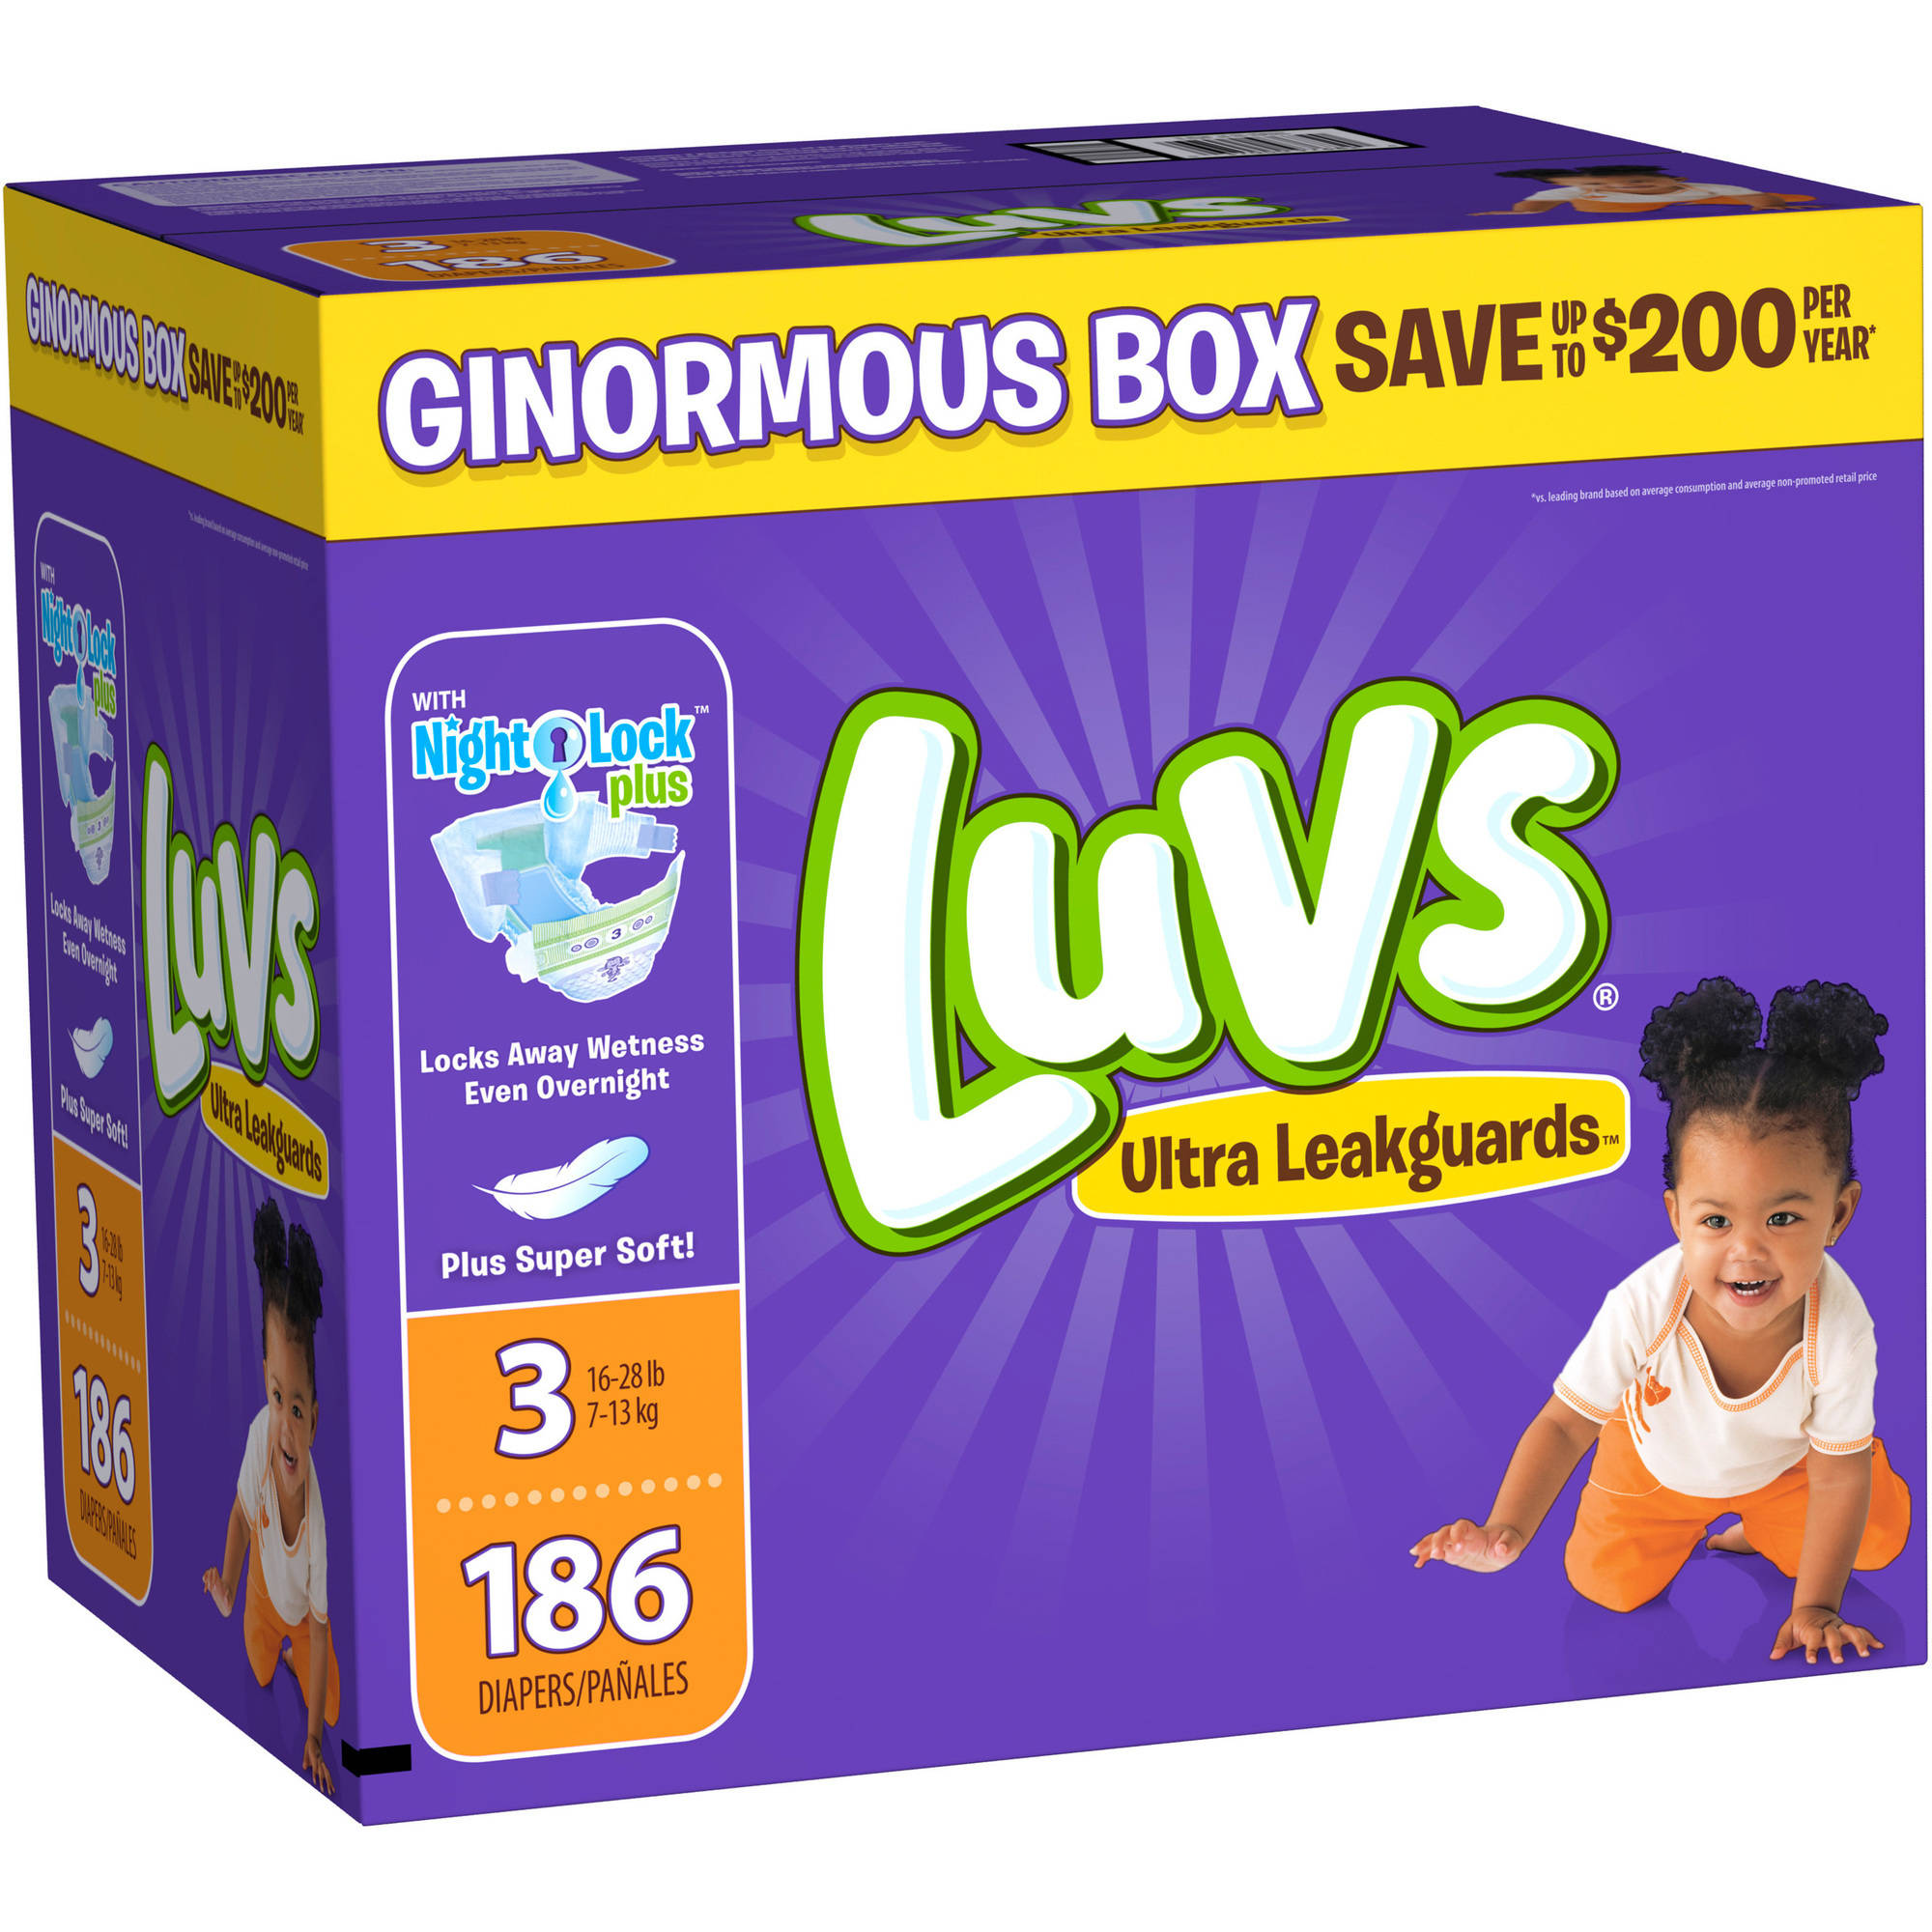 Luvs Ultra Leakguards Diapers, Size 3, 120 Diapers